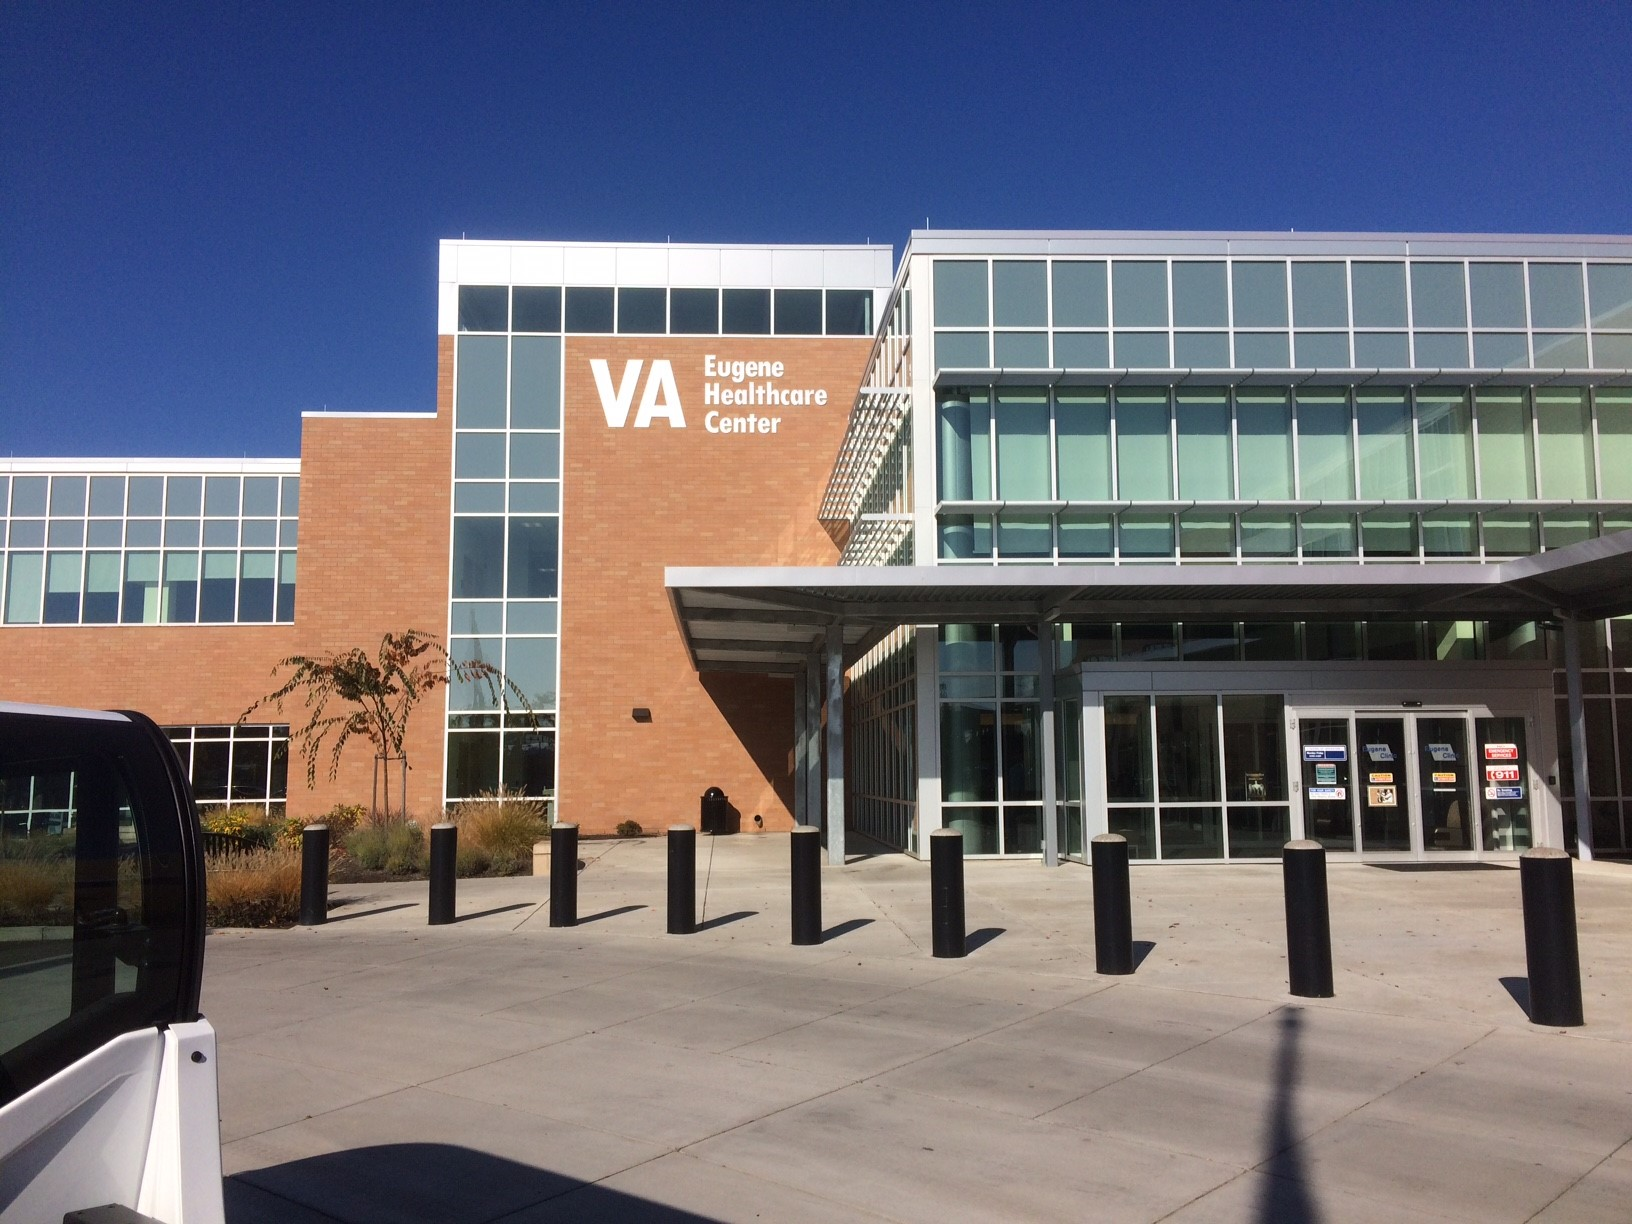 Investigators from the Veterans Health Administration Office of Medical Inspector will be in Oregon next week to talk with employees in Roseburg and Eugene, according to Rep. Peter DeFazio's office. (SBG)